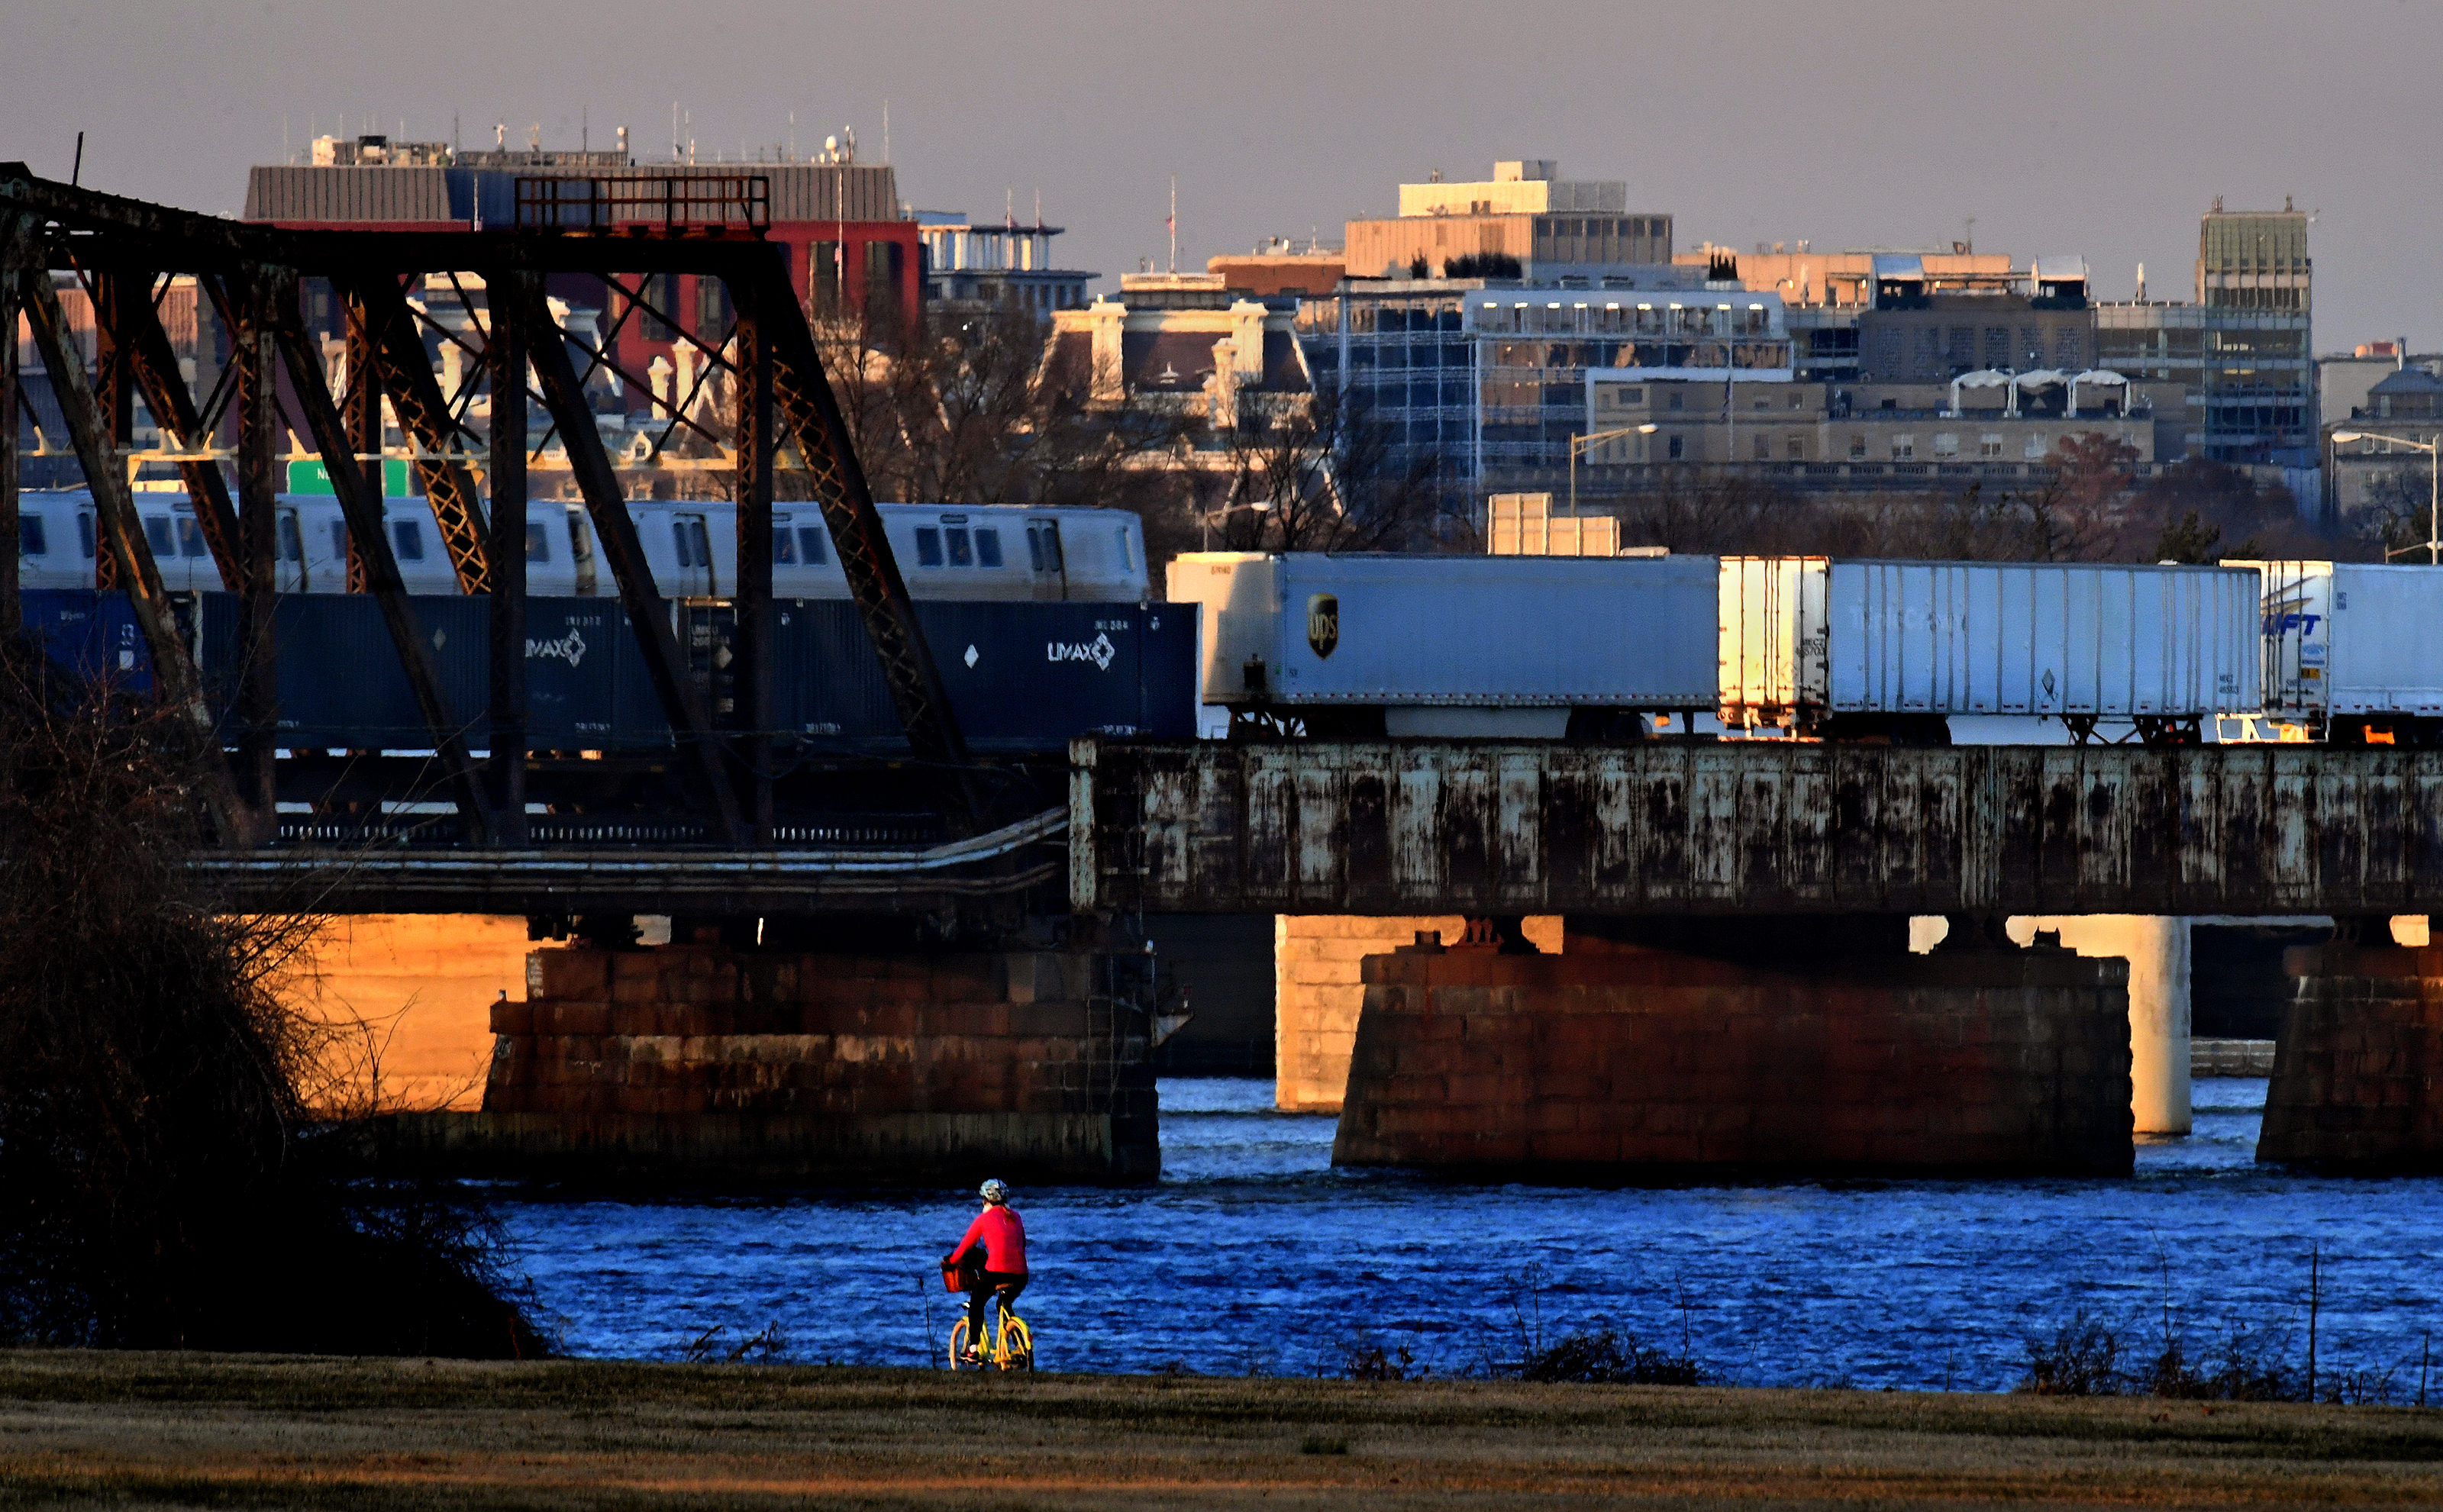 A freight train crosses a bridge over a river. A person rides a bicycle in the foreground and there are tall building sin the background.